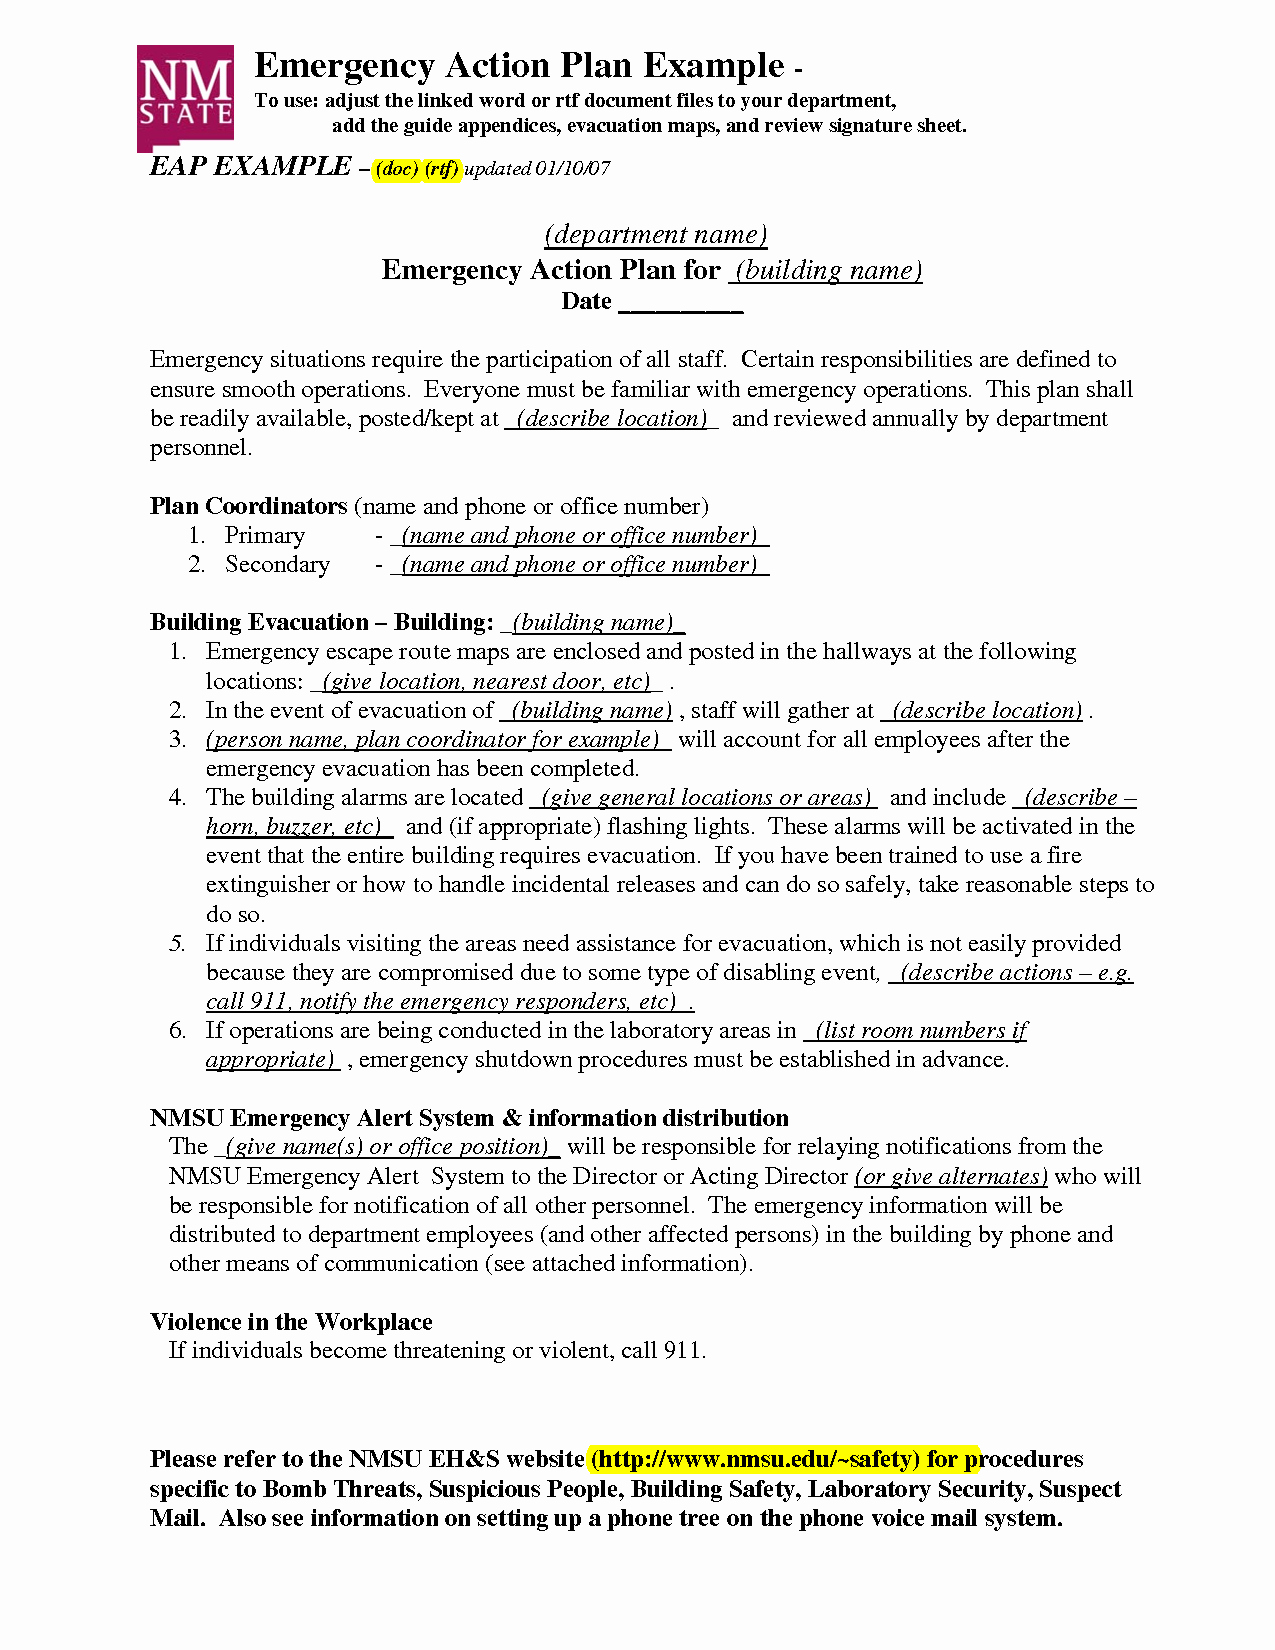 Emergency Action Plan Template Lovely Emergency Action Plan Template